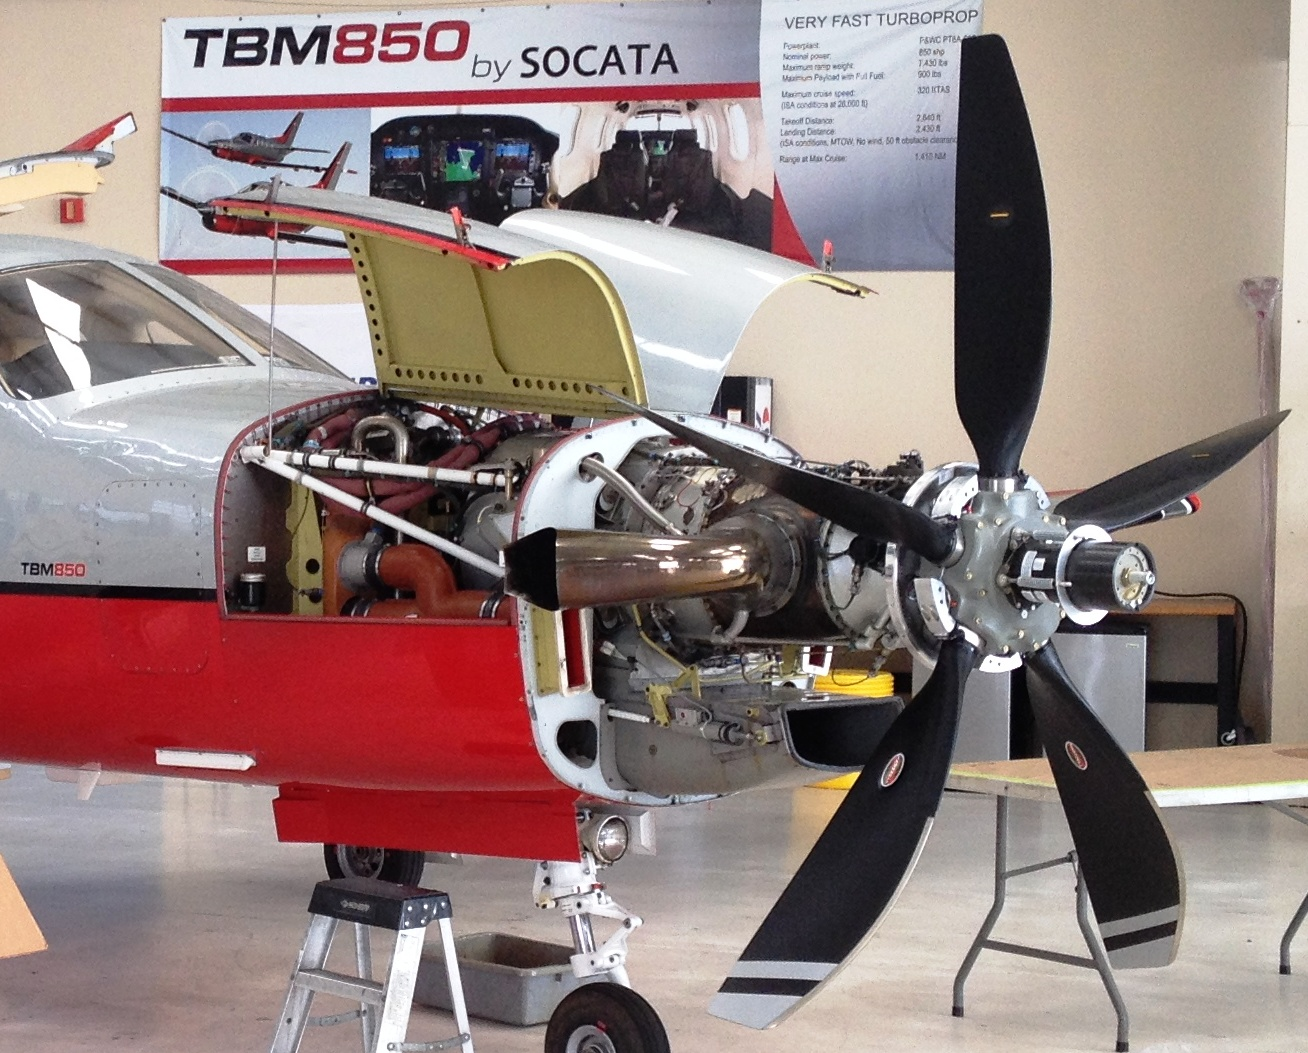 Easa Oks Hartzell 39 S 5 Blade Composite Swept Prop For Tbm